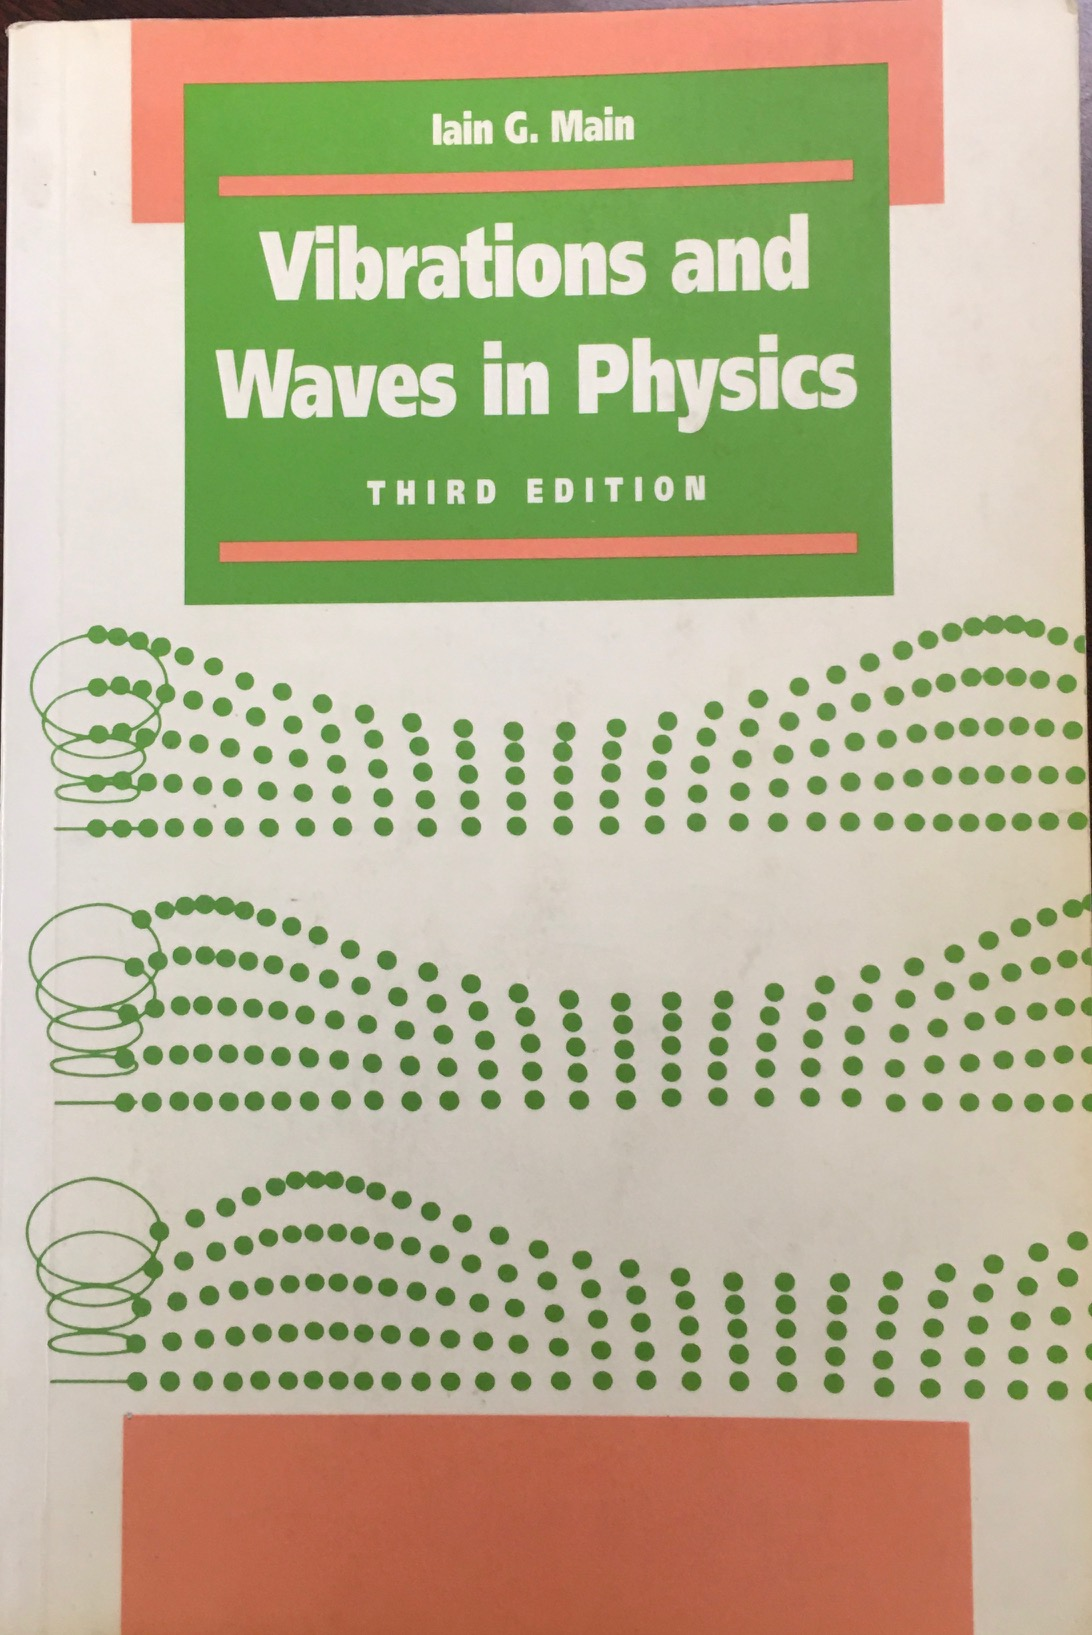 Image for Vibrations and Waves in Physics: Third Edition